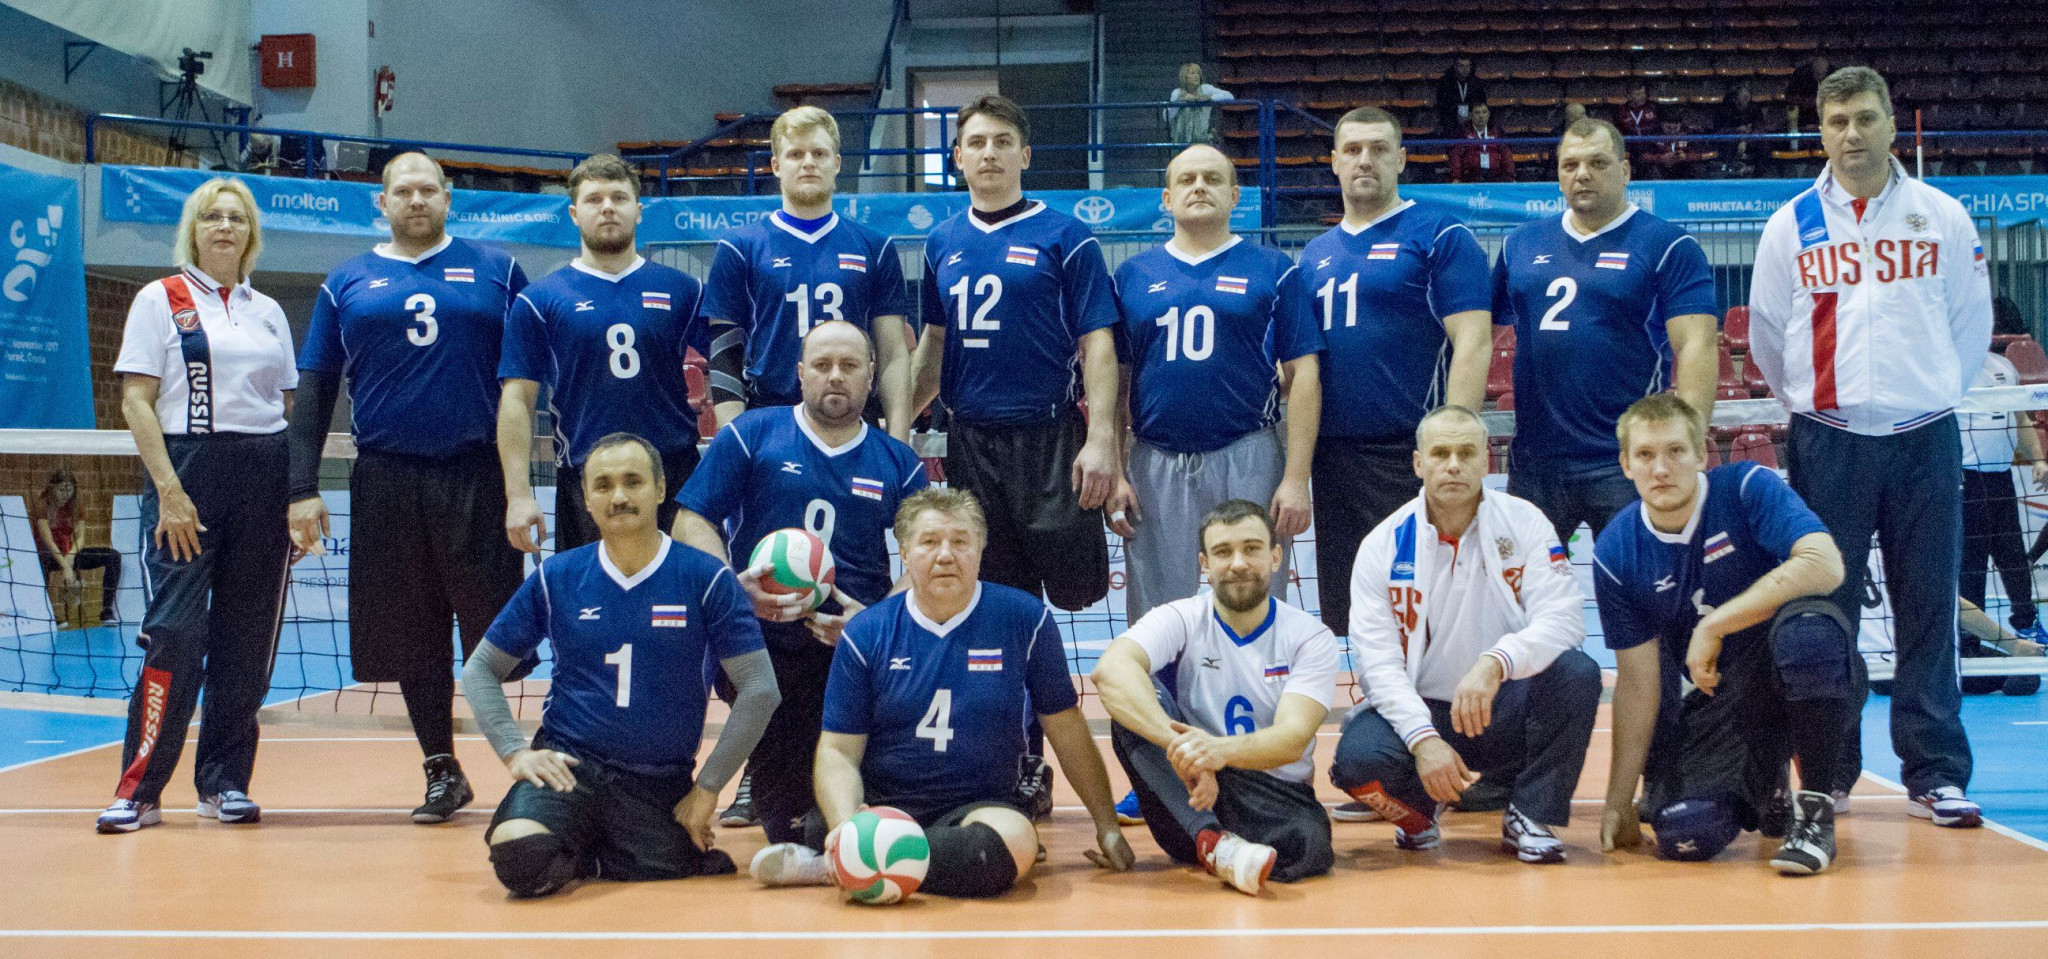 Bosnia to meet Russia in European Sitting Volleyball Championships men's semi-finals